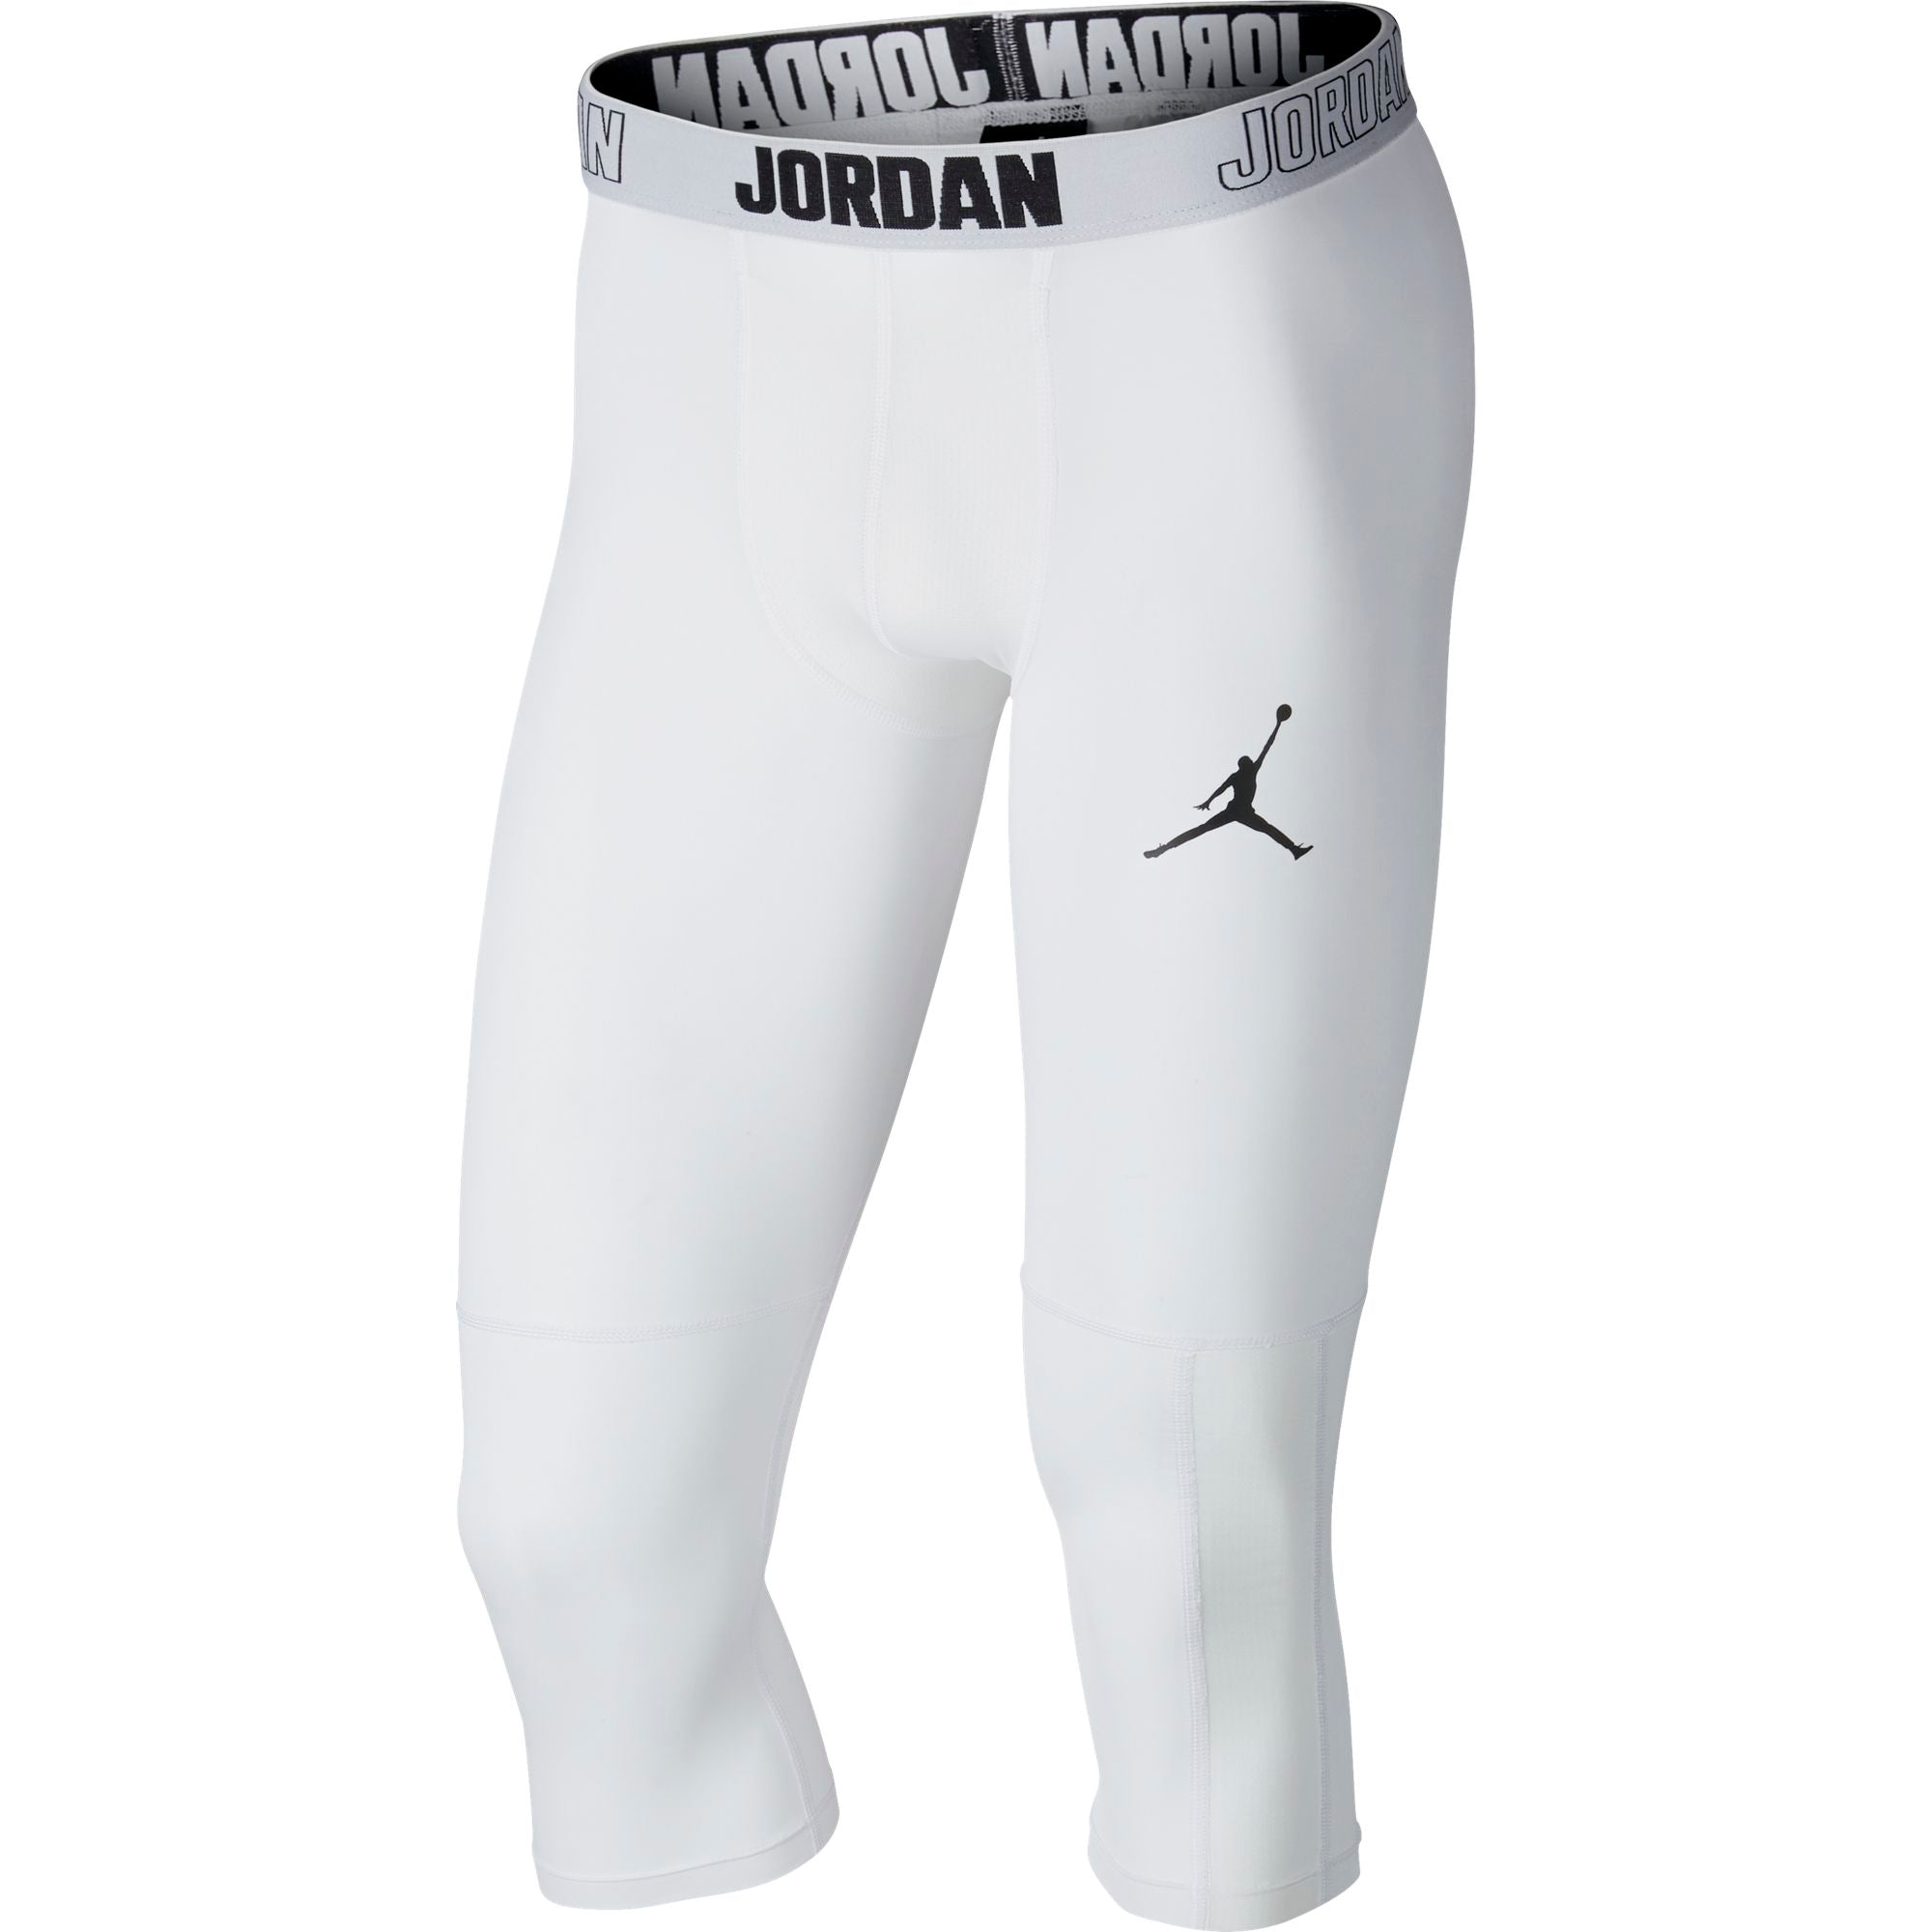 Nike Jordan Dry 23 Alpha 3/4 Training Tights - NK-892246-100